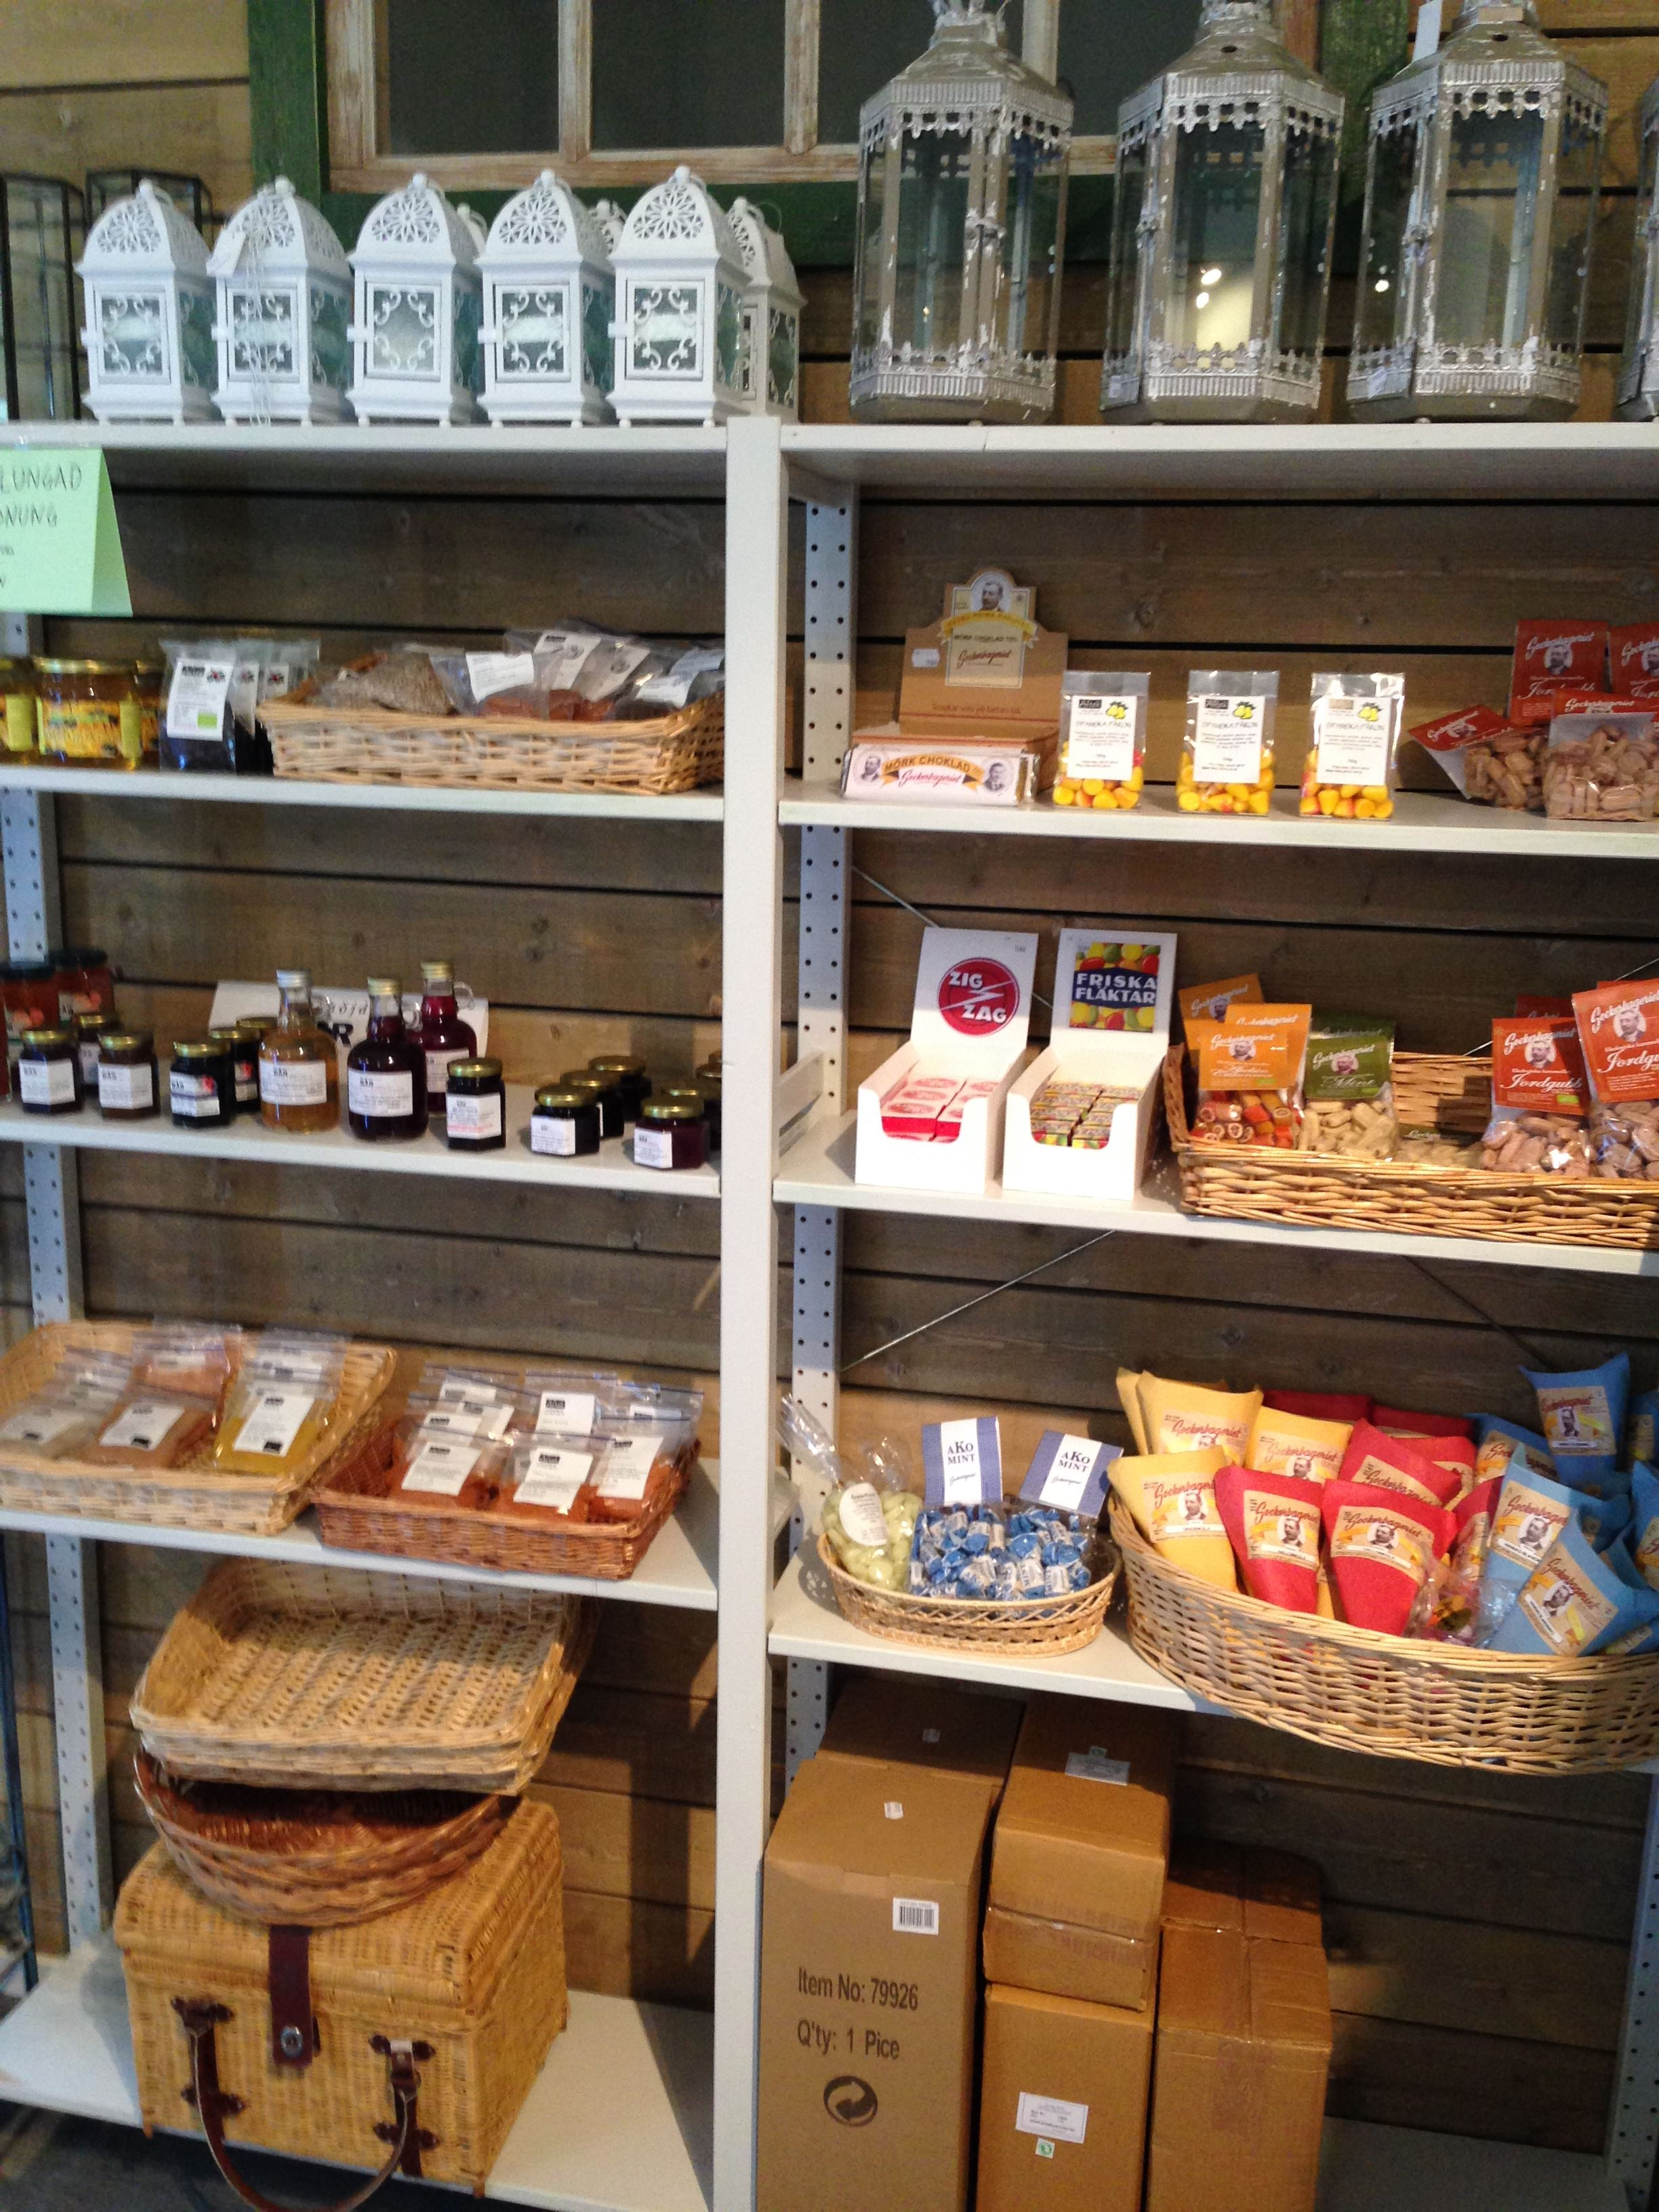 Leva farm shop